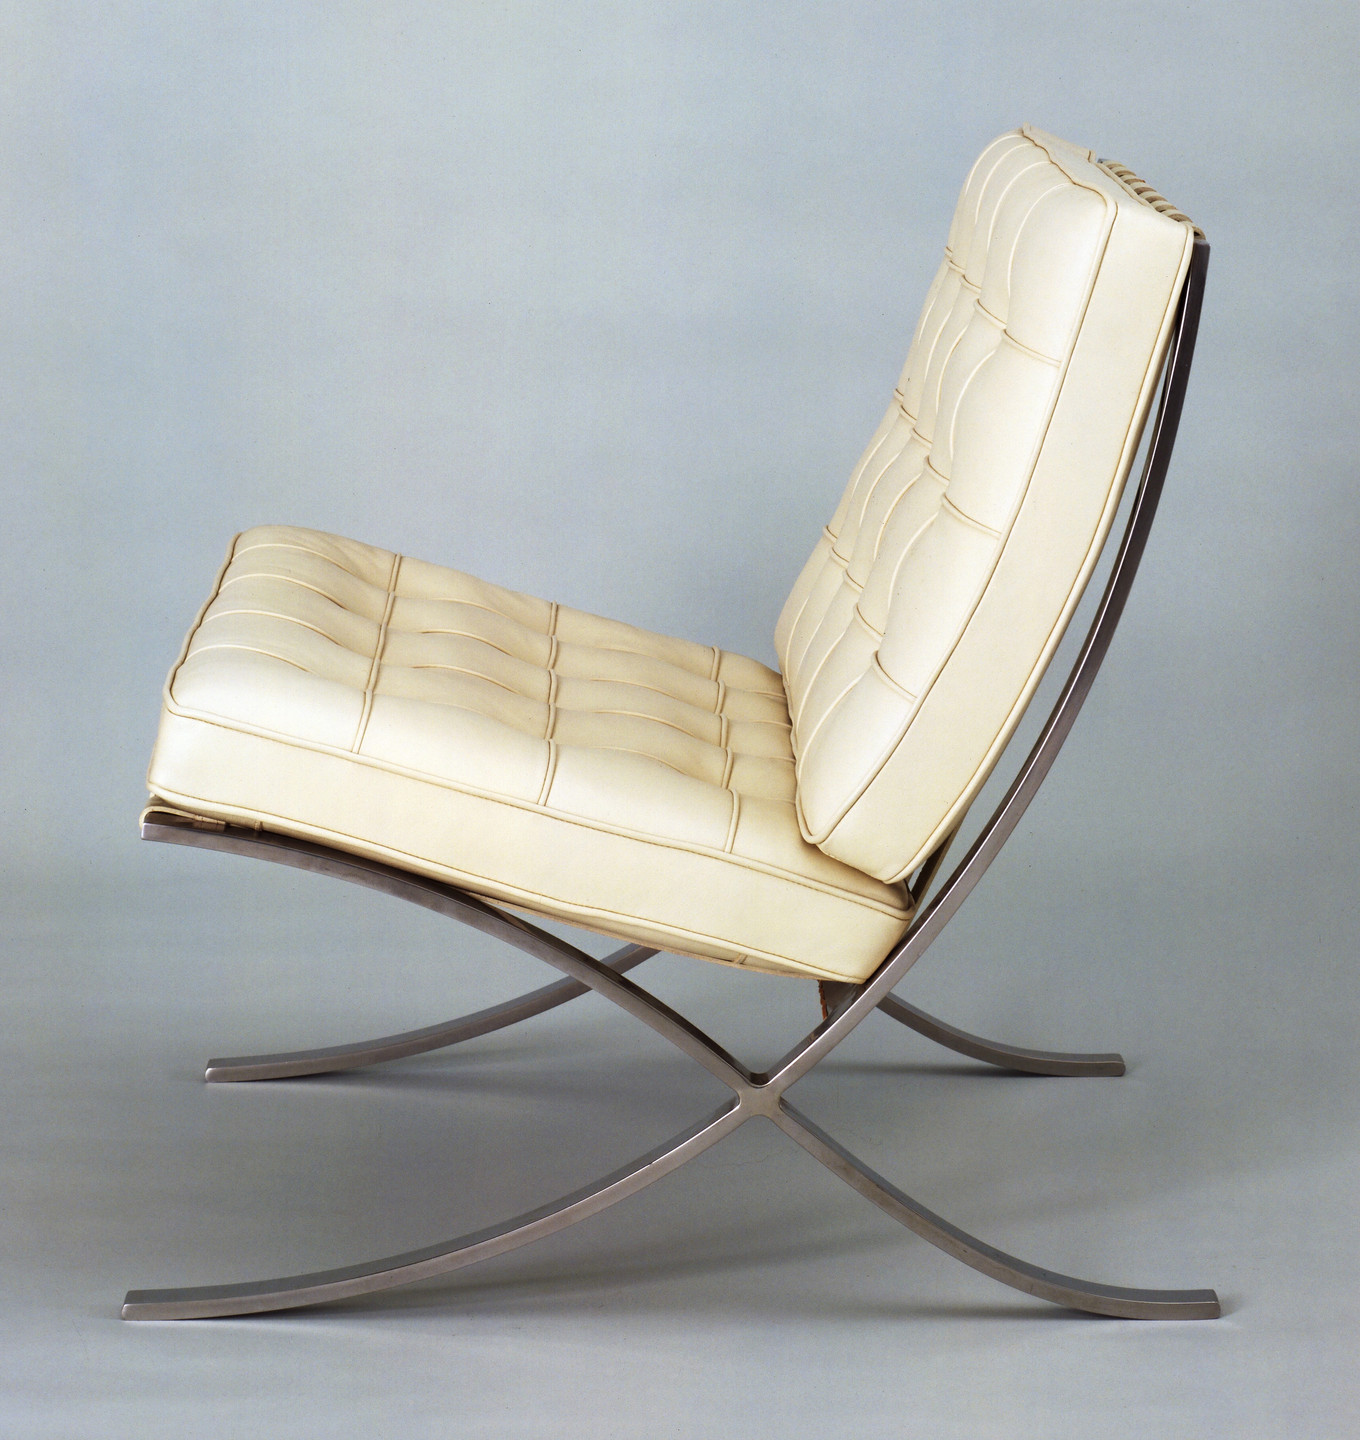 Ludwig Mies van der Rohe. Barcelona Chair. Designed 1929 (this example 1953)